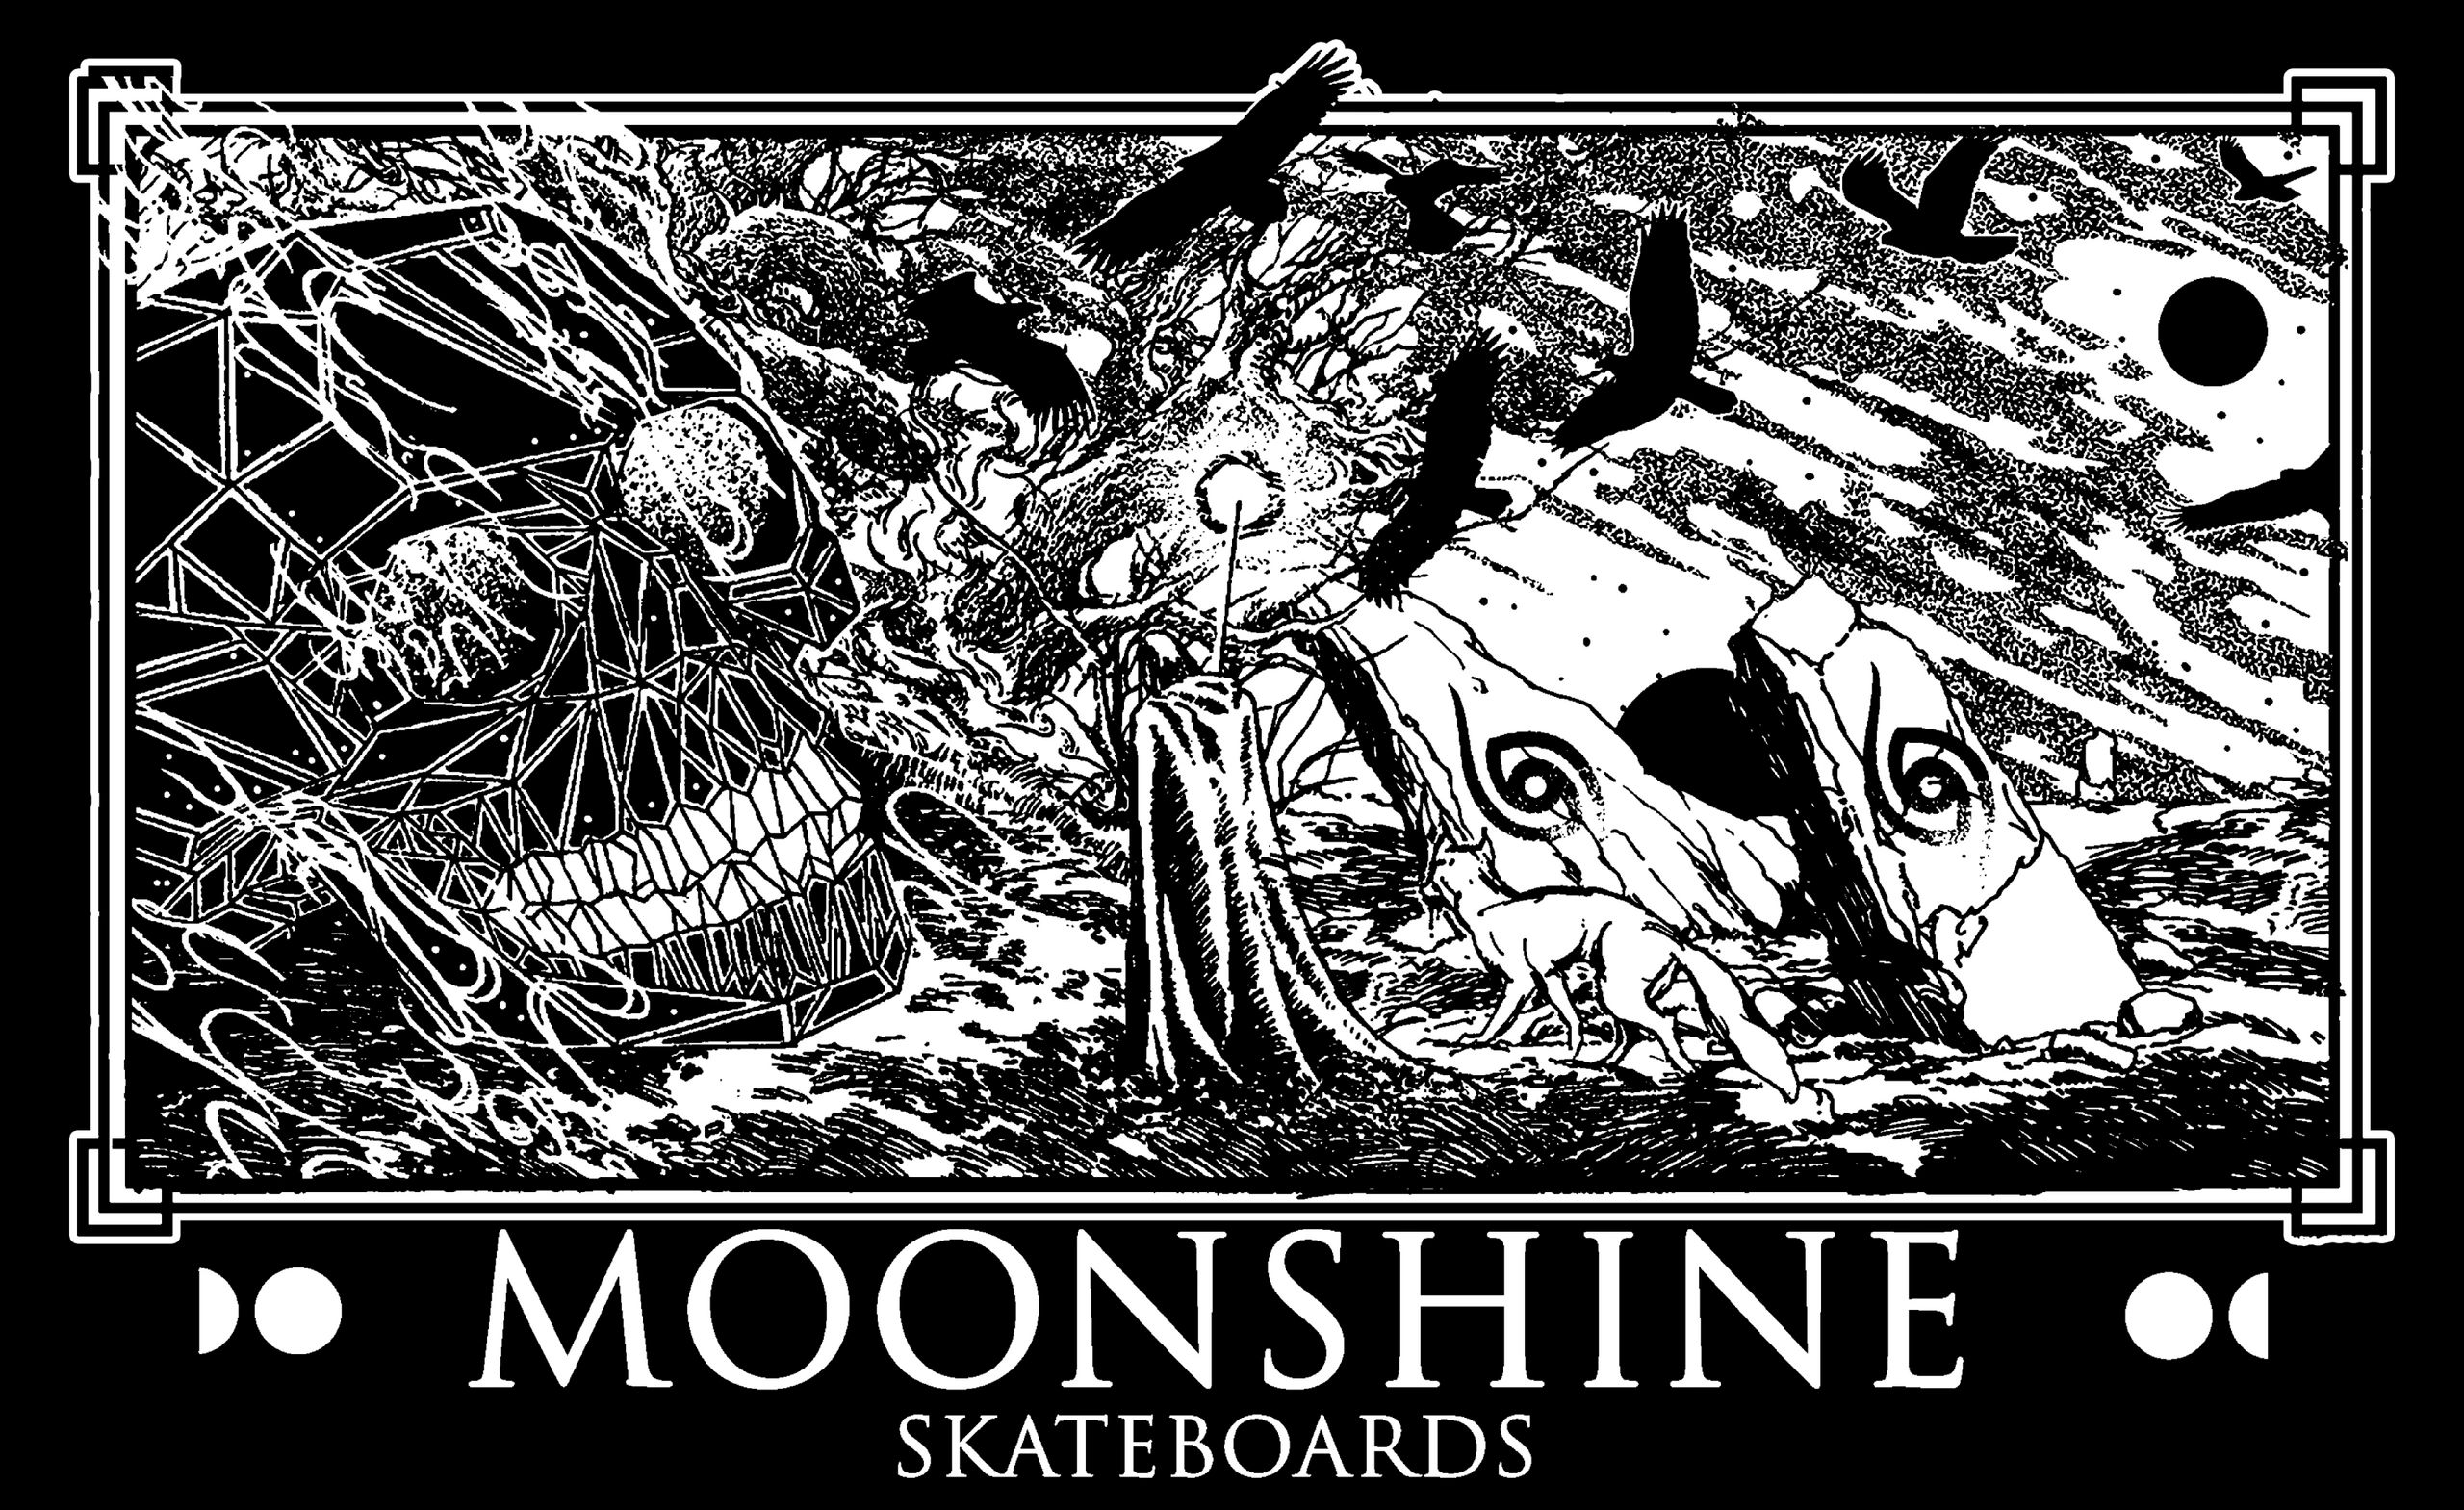 Moonshine skateboards home freestyle skateboards old school shape skateboards zorlac